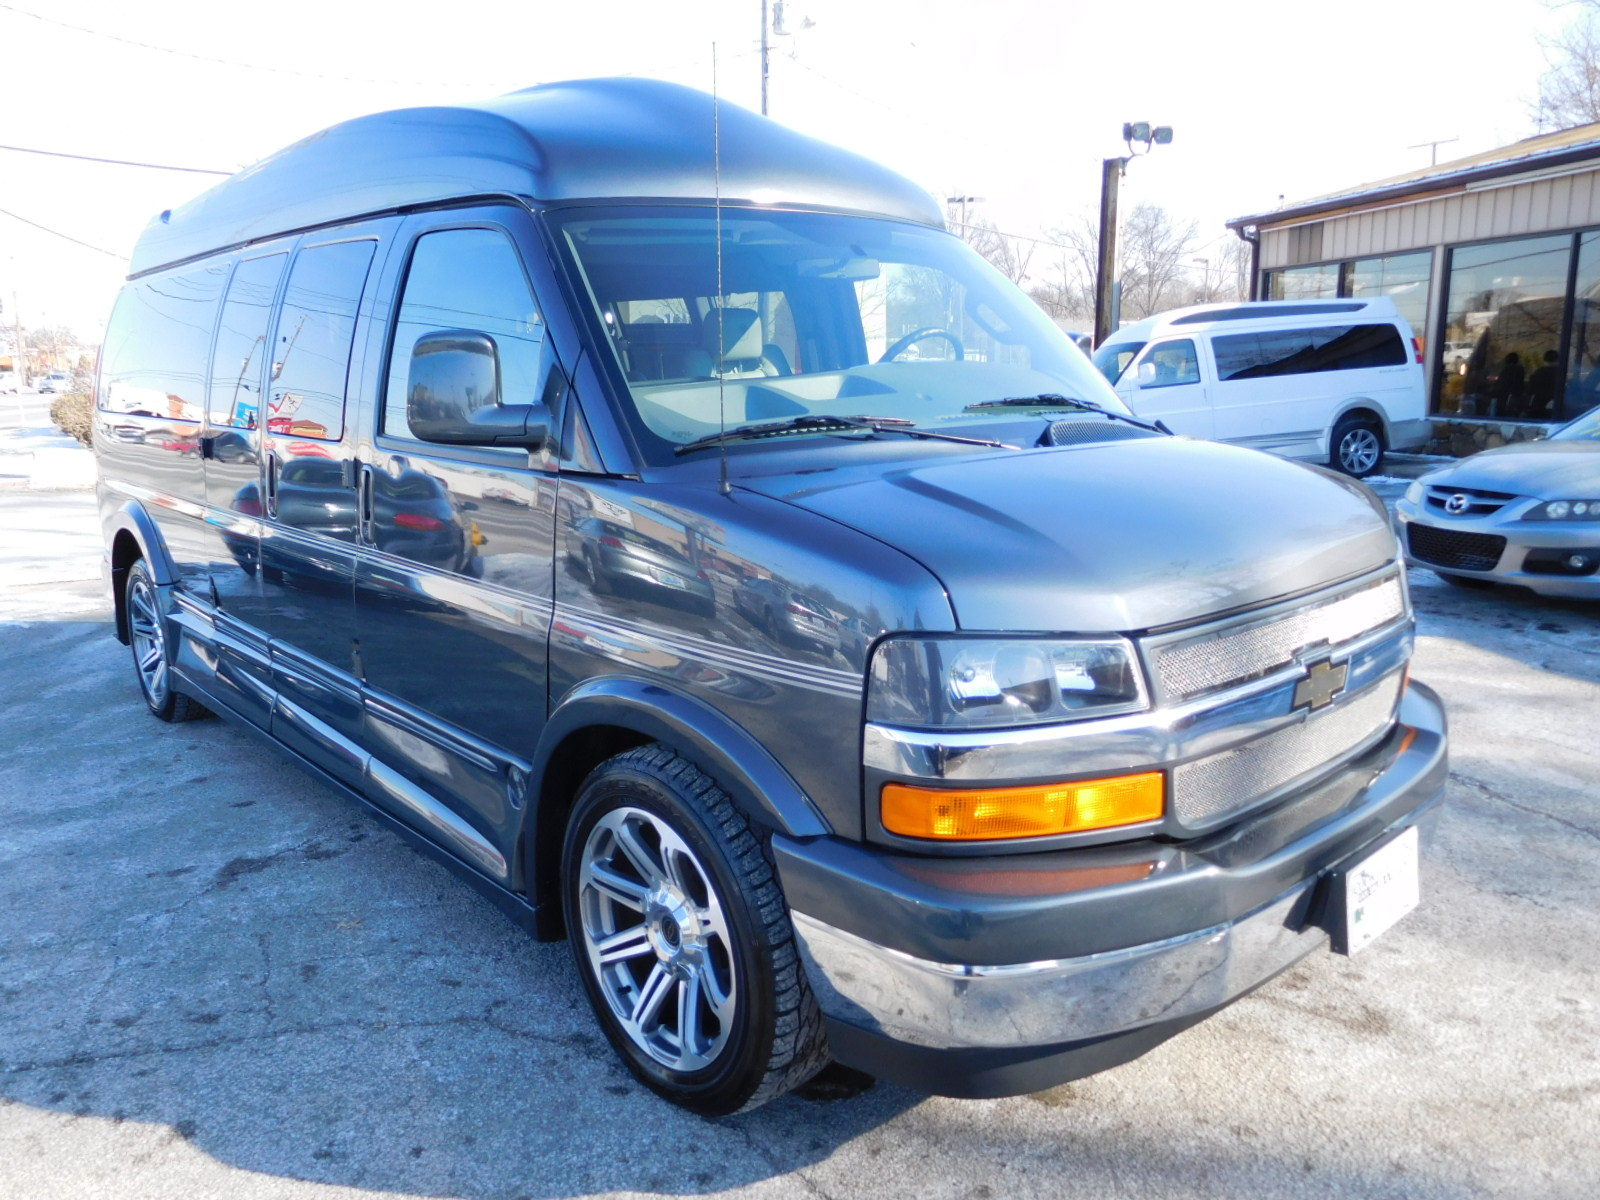 17 CHEVY EXPRESS 9-PASSENGER EXPLORER LIMITED SE